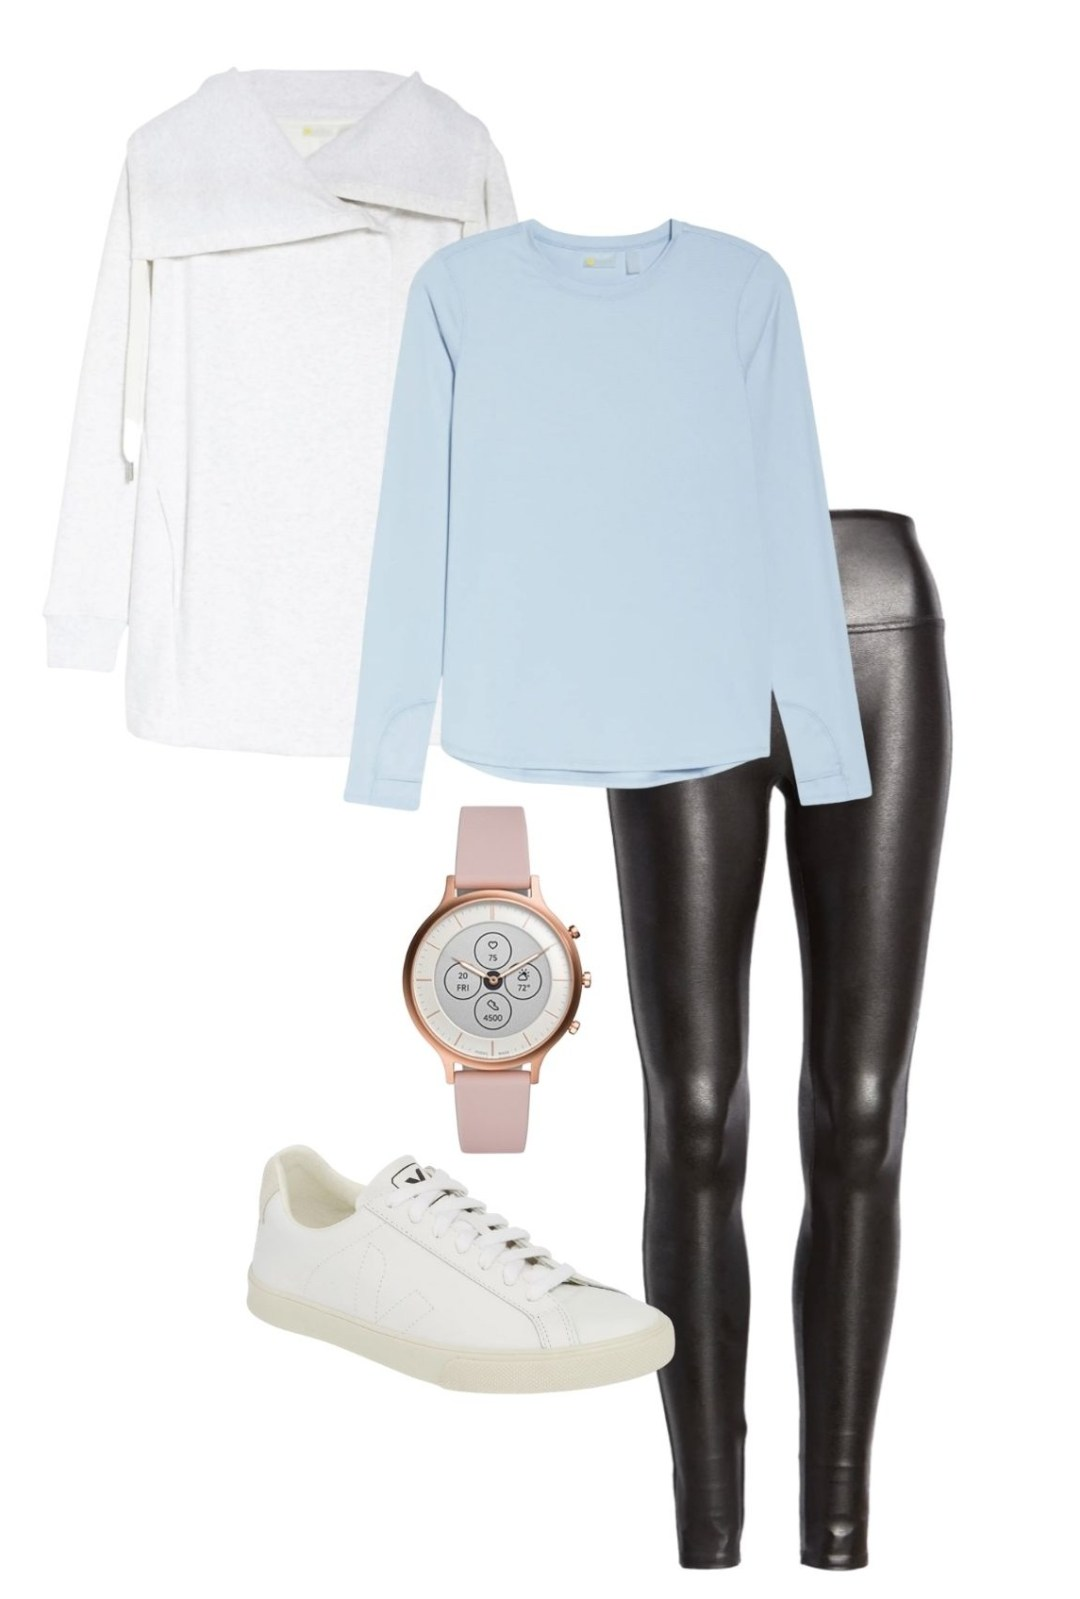 Athleisure for cold weather